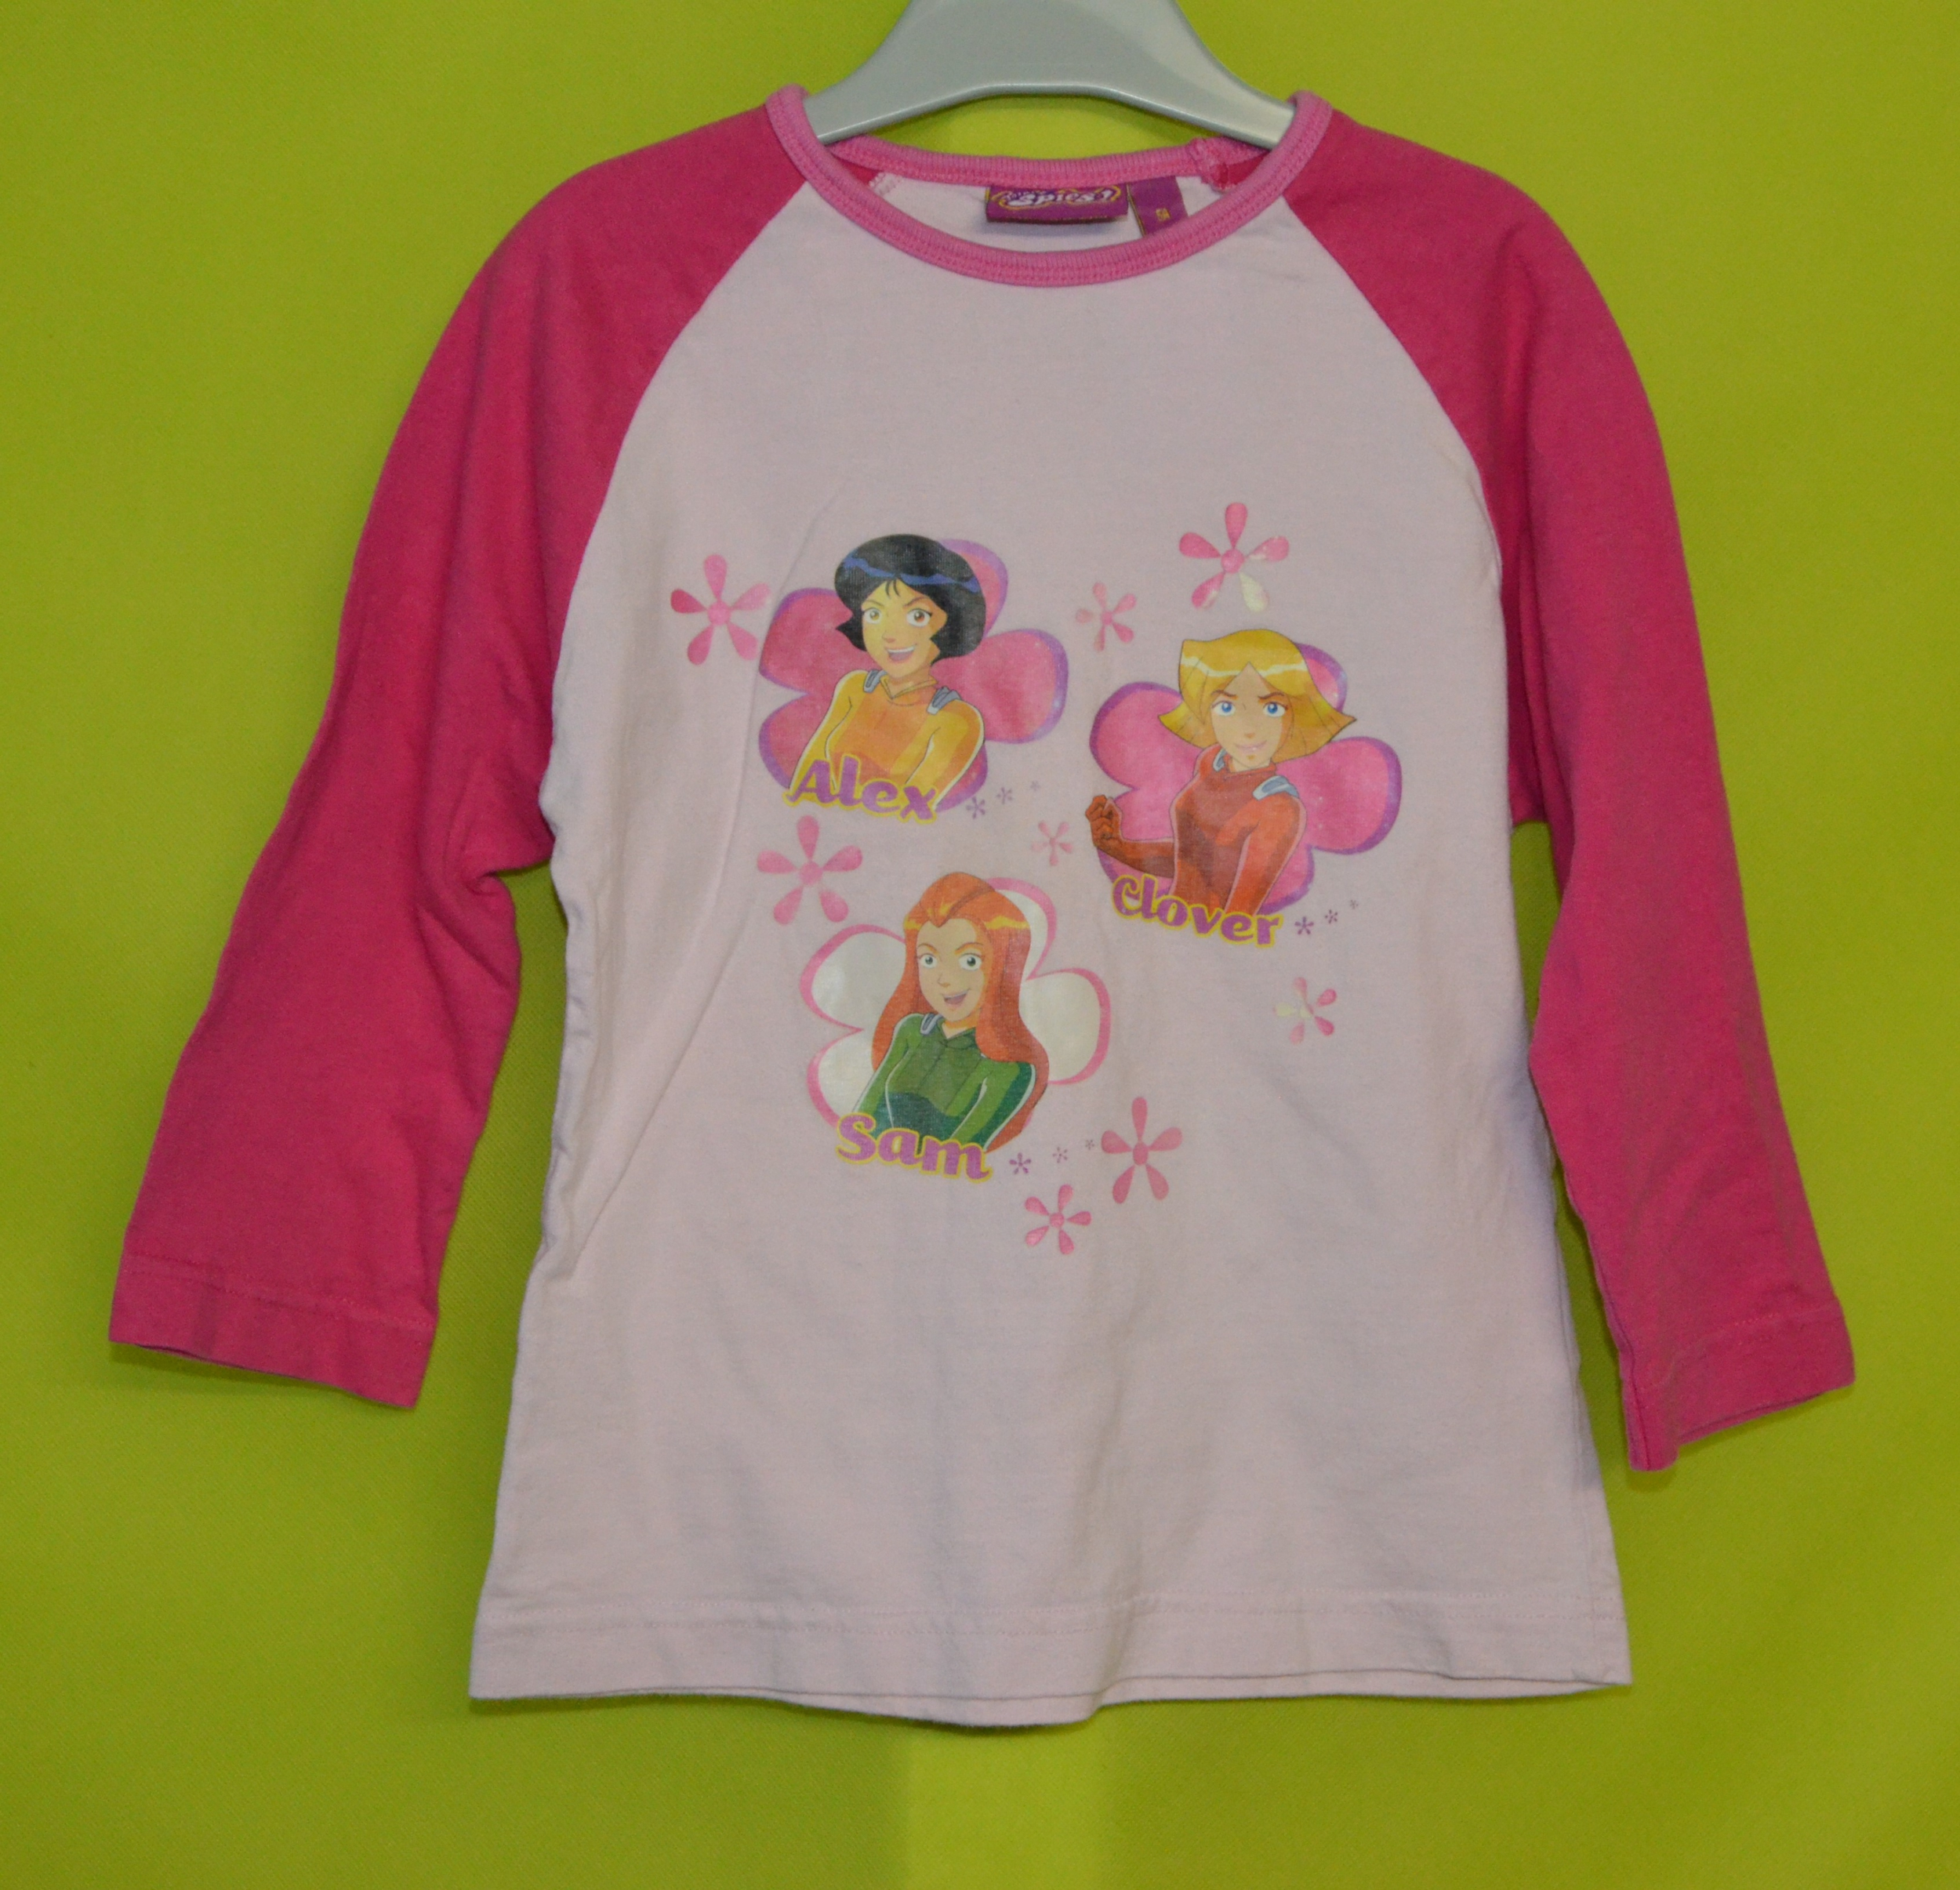 tee-shirt manches longues 5 ans fille rose totally spies occasion